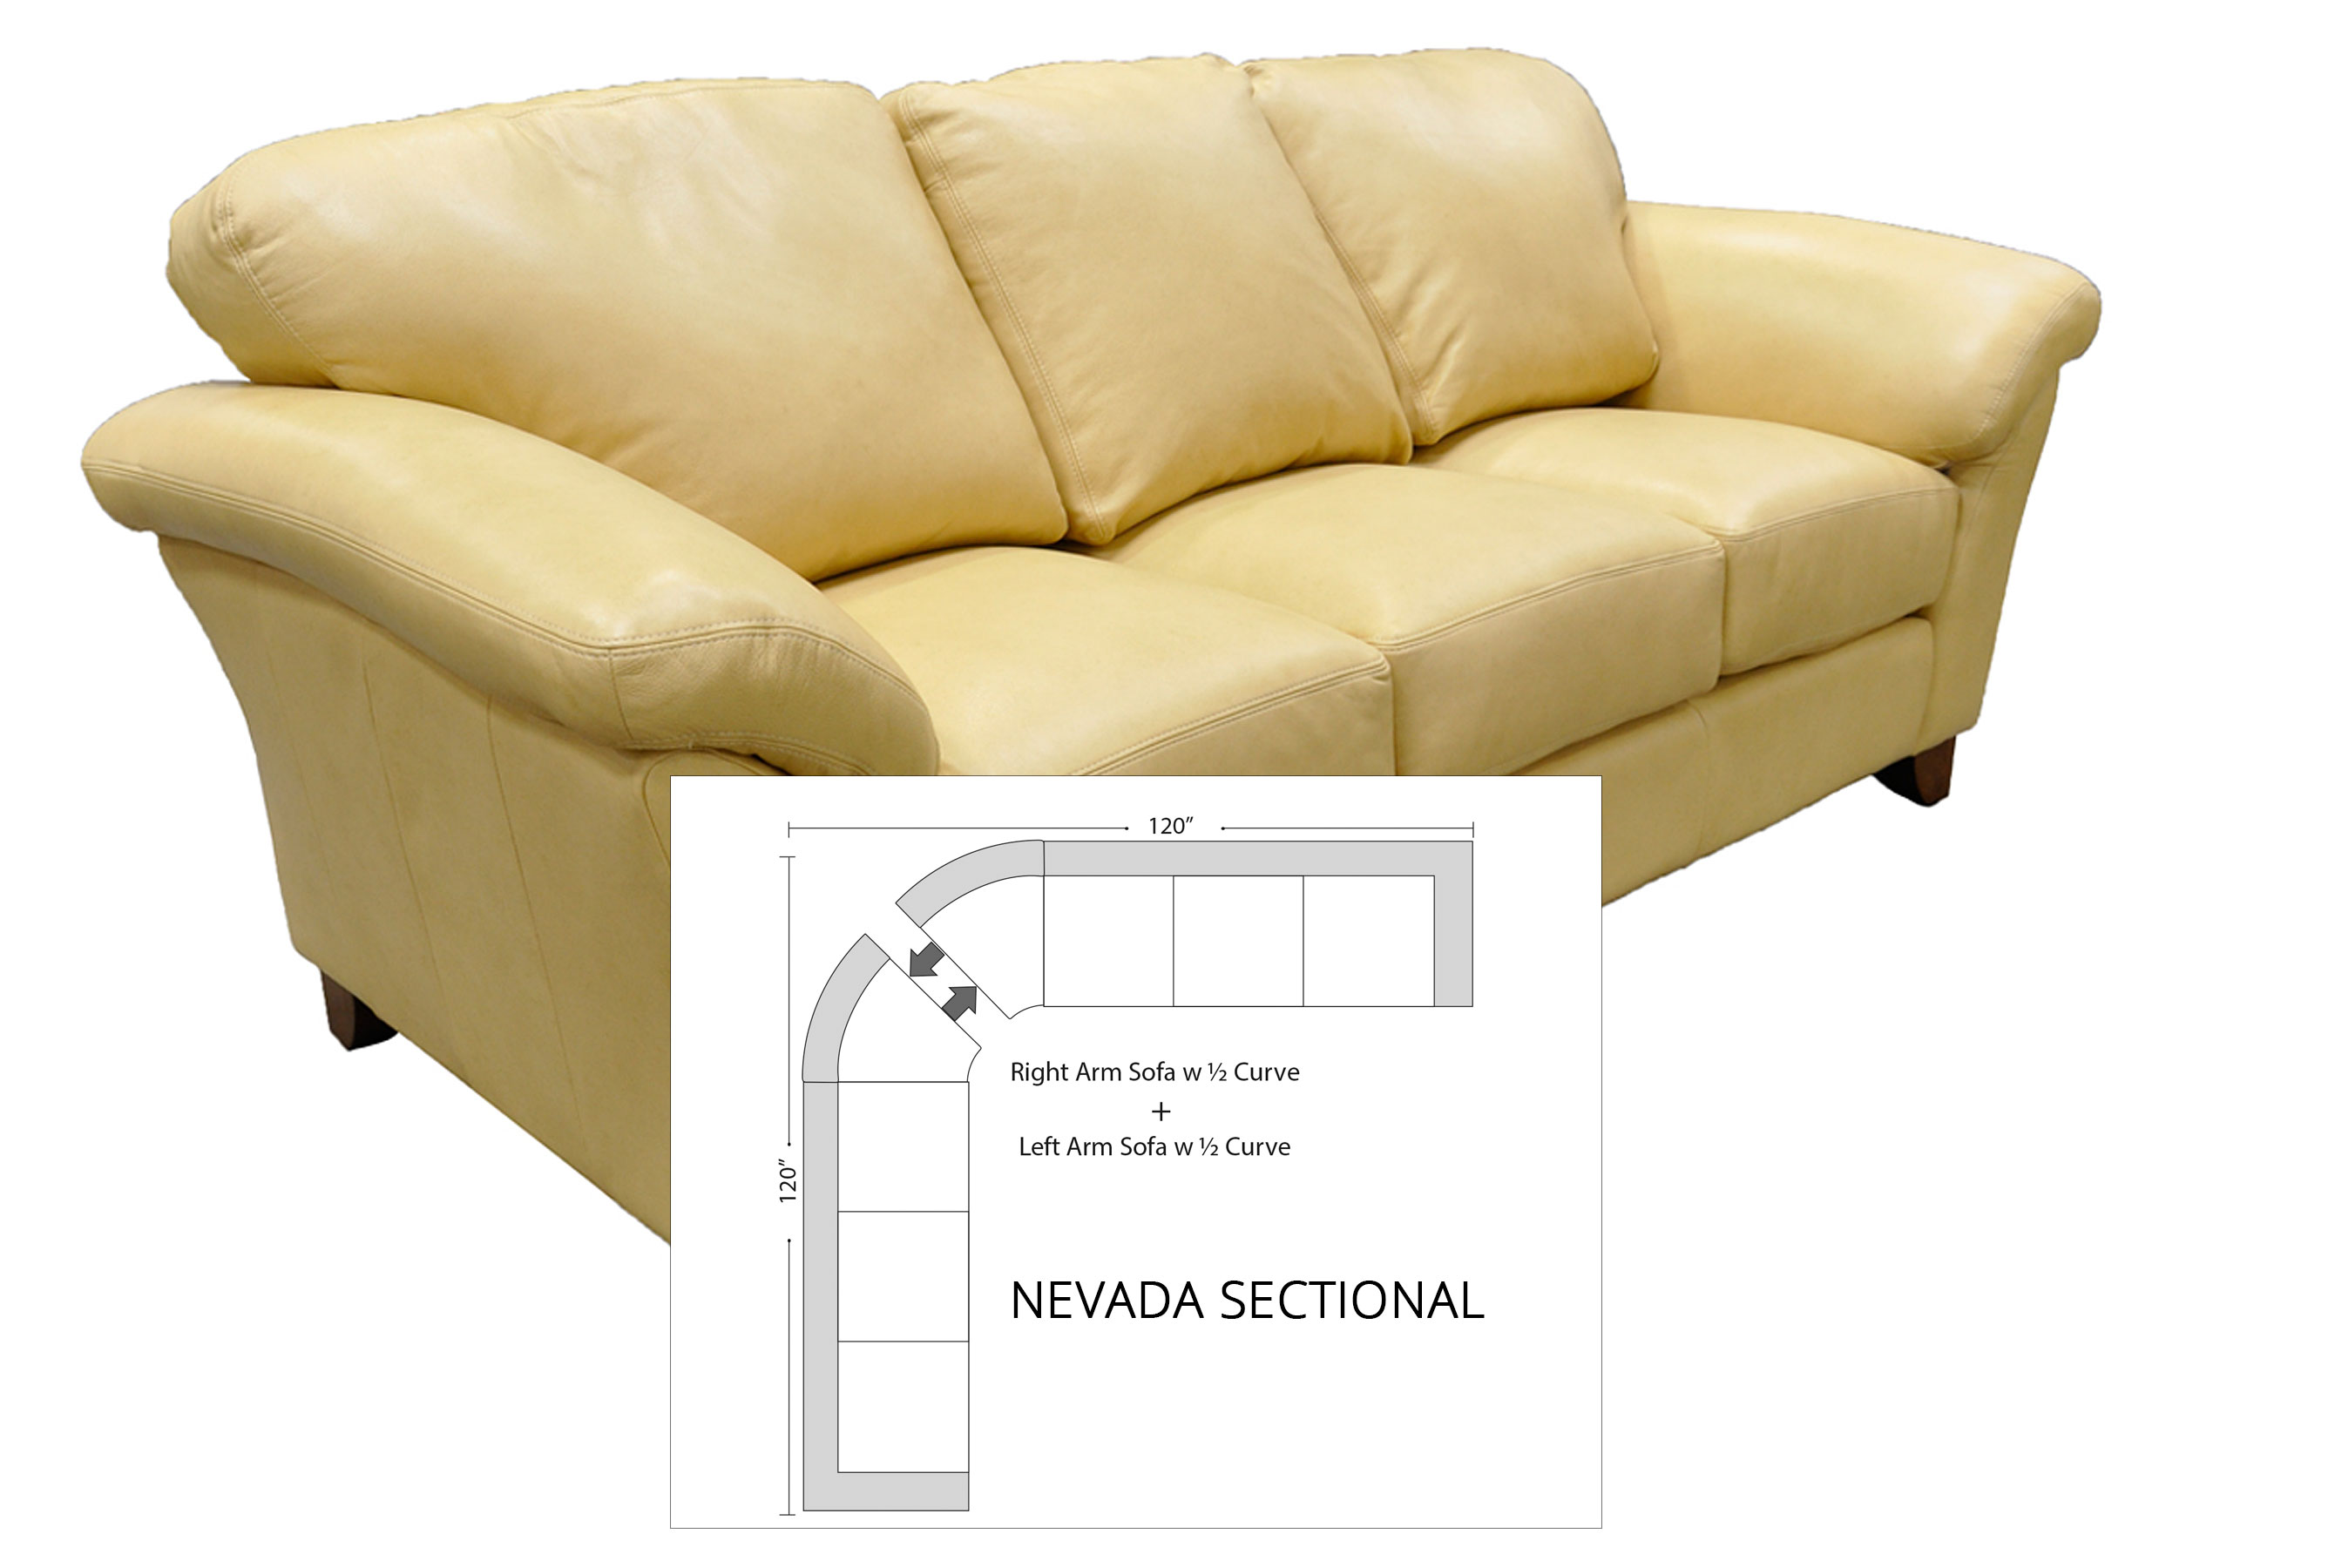 Awesome Nevada Sectional All Leather Sofas And Sectionals Caraccident5 Cool Chair Designs And Ideas Caraccident5Info